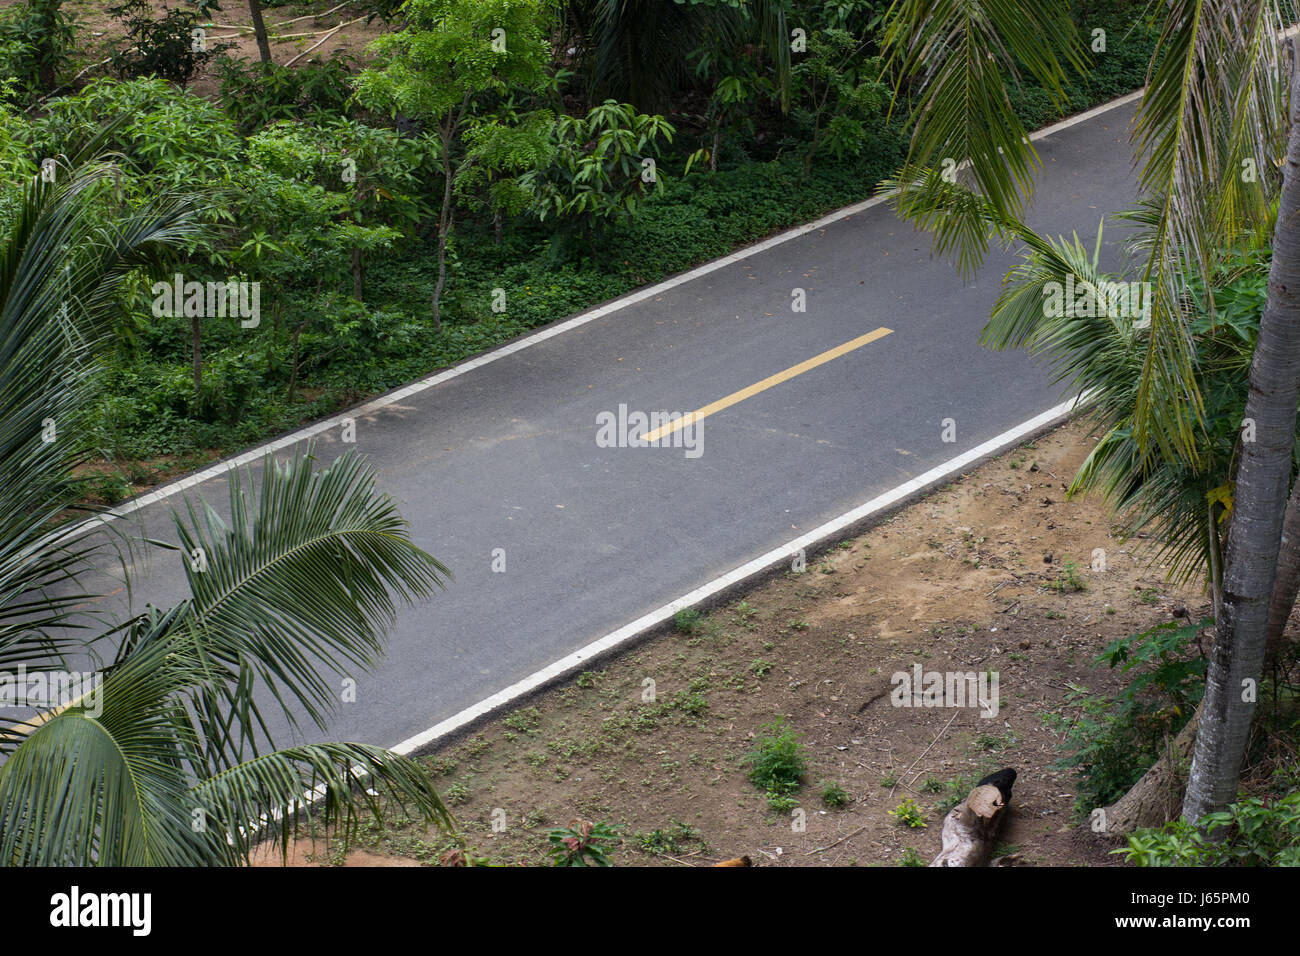 Asphalt road in a dense tropical forest with gleams view from above - Stock Image